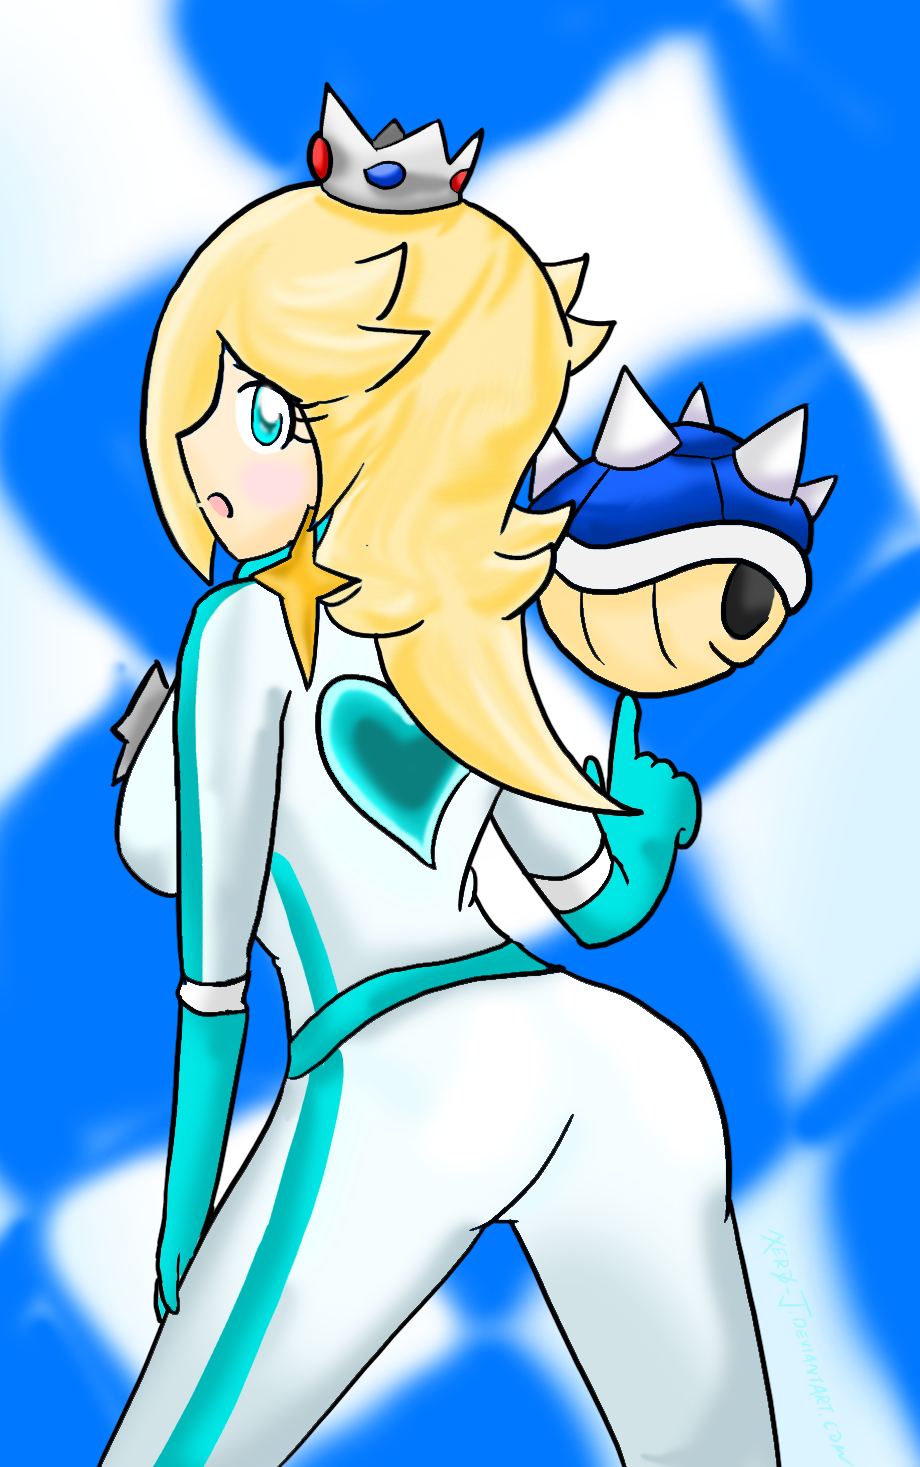 from Arian mario kissing rosalina porn